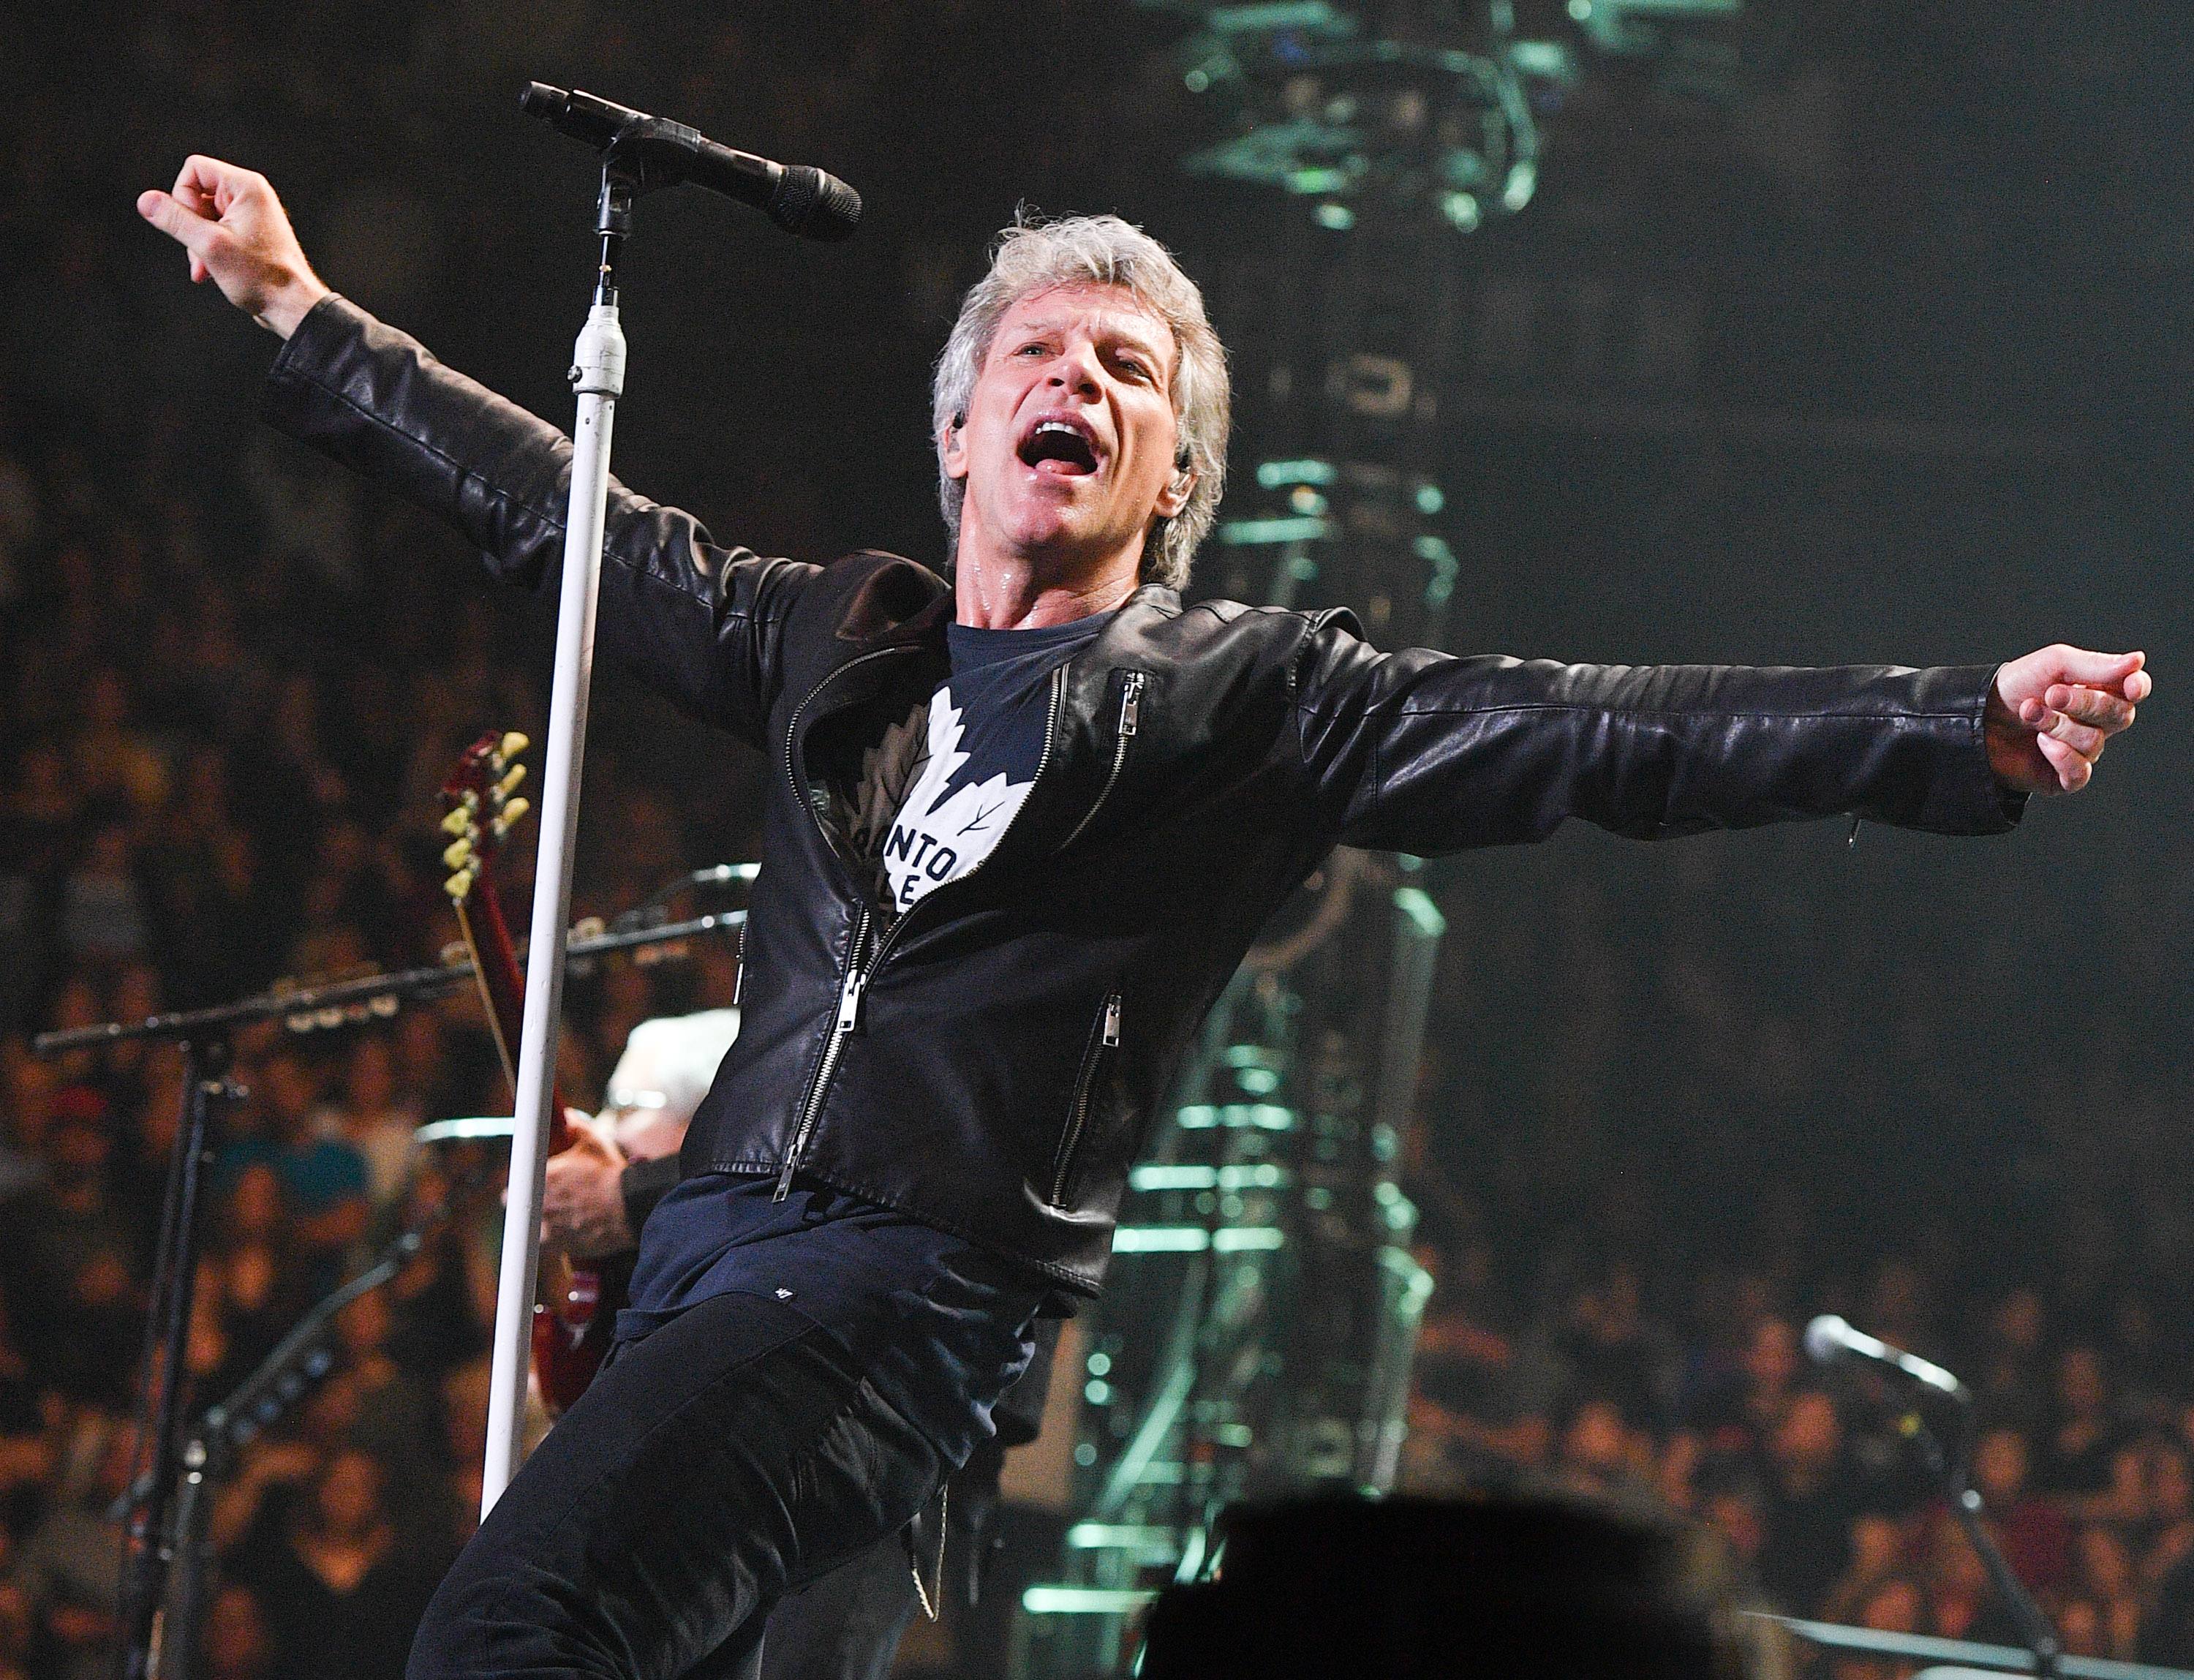 Jon Bon Jovi performs live at the Air Canada Centre on April 10, 2017 in Toronto, Canada.